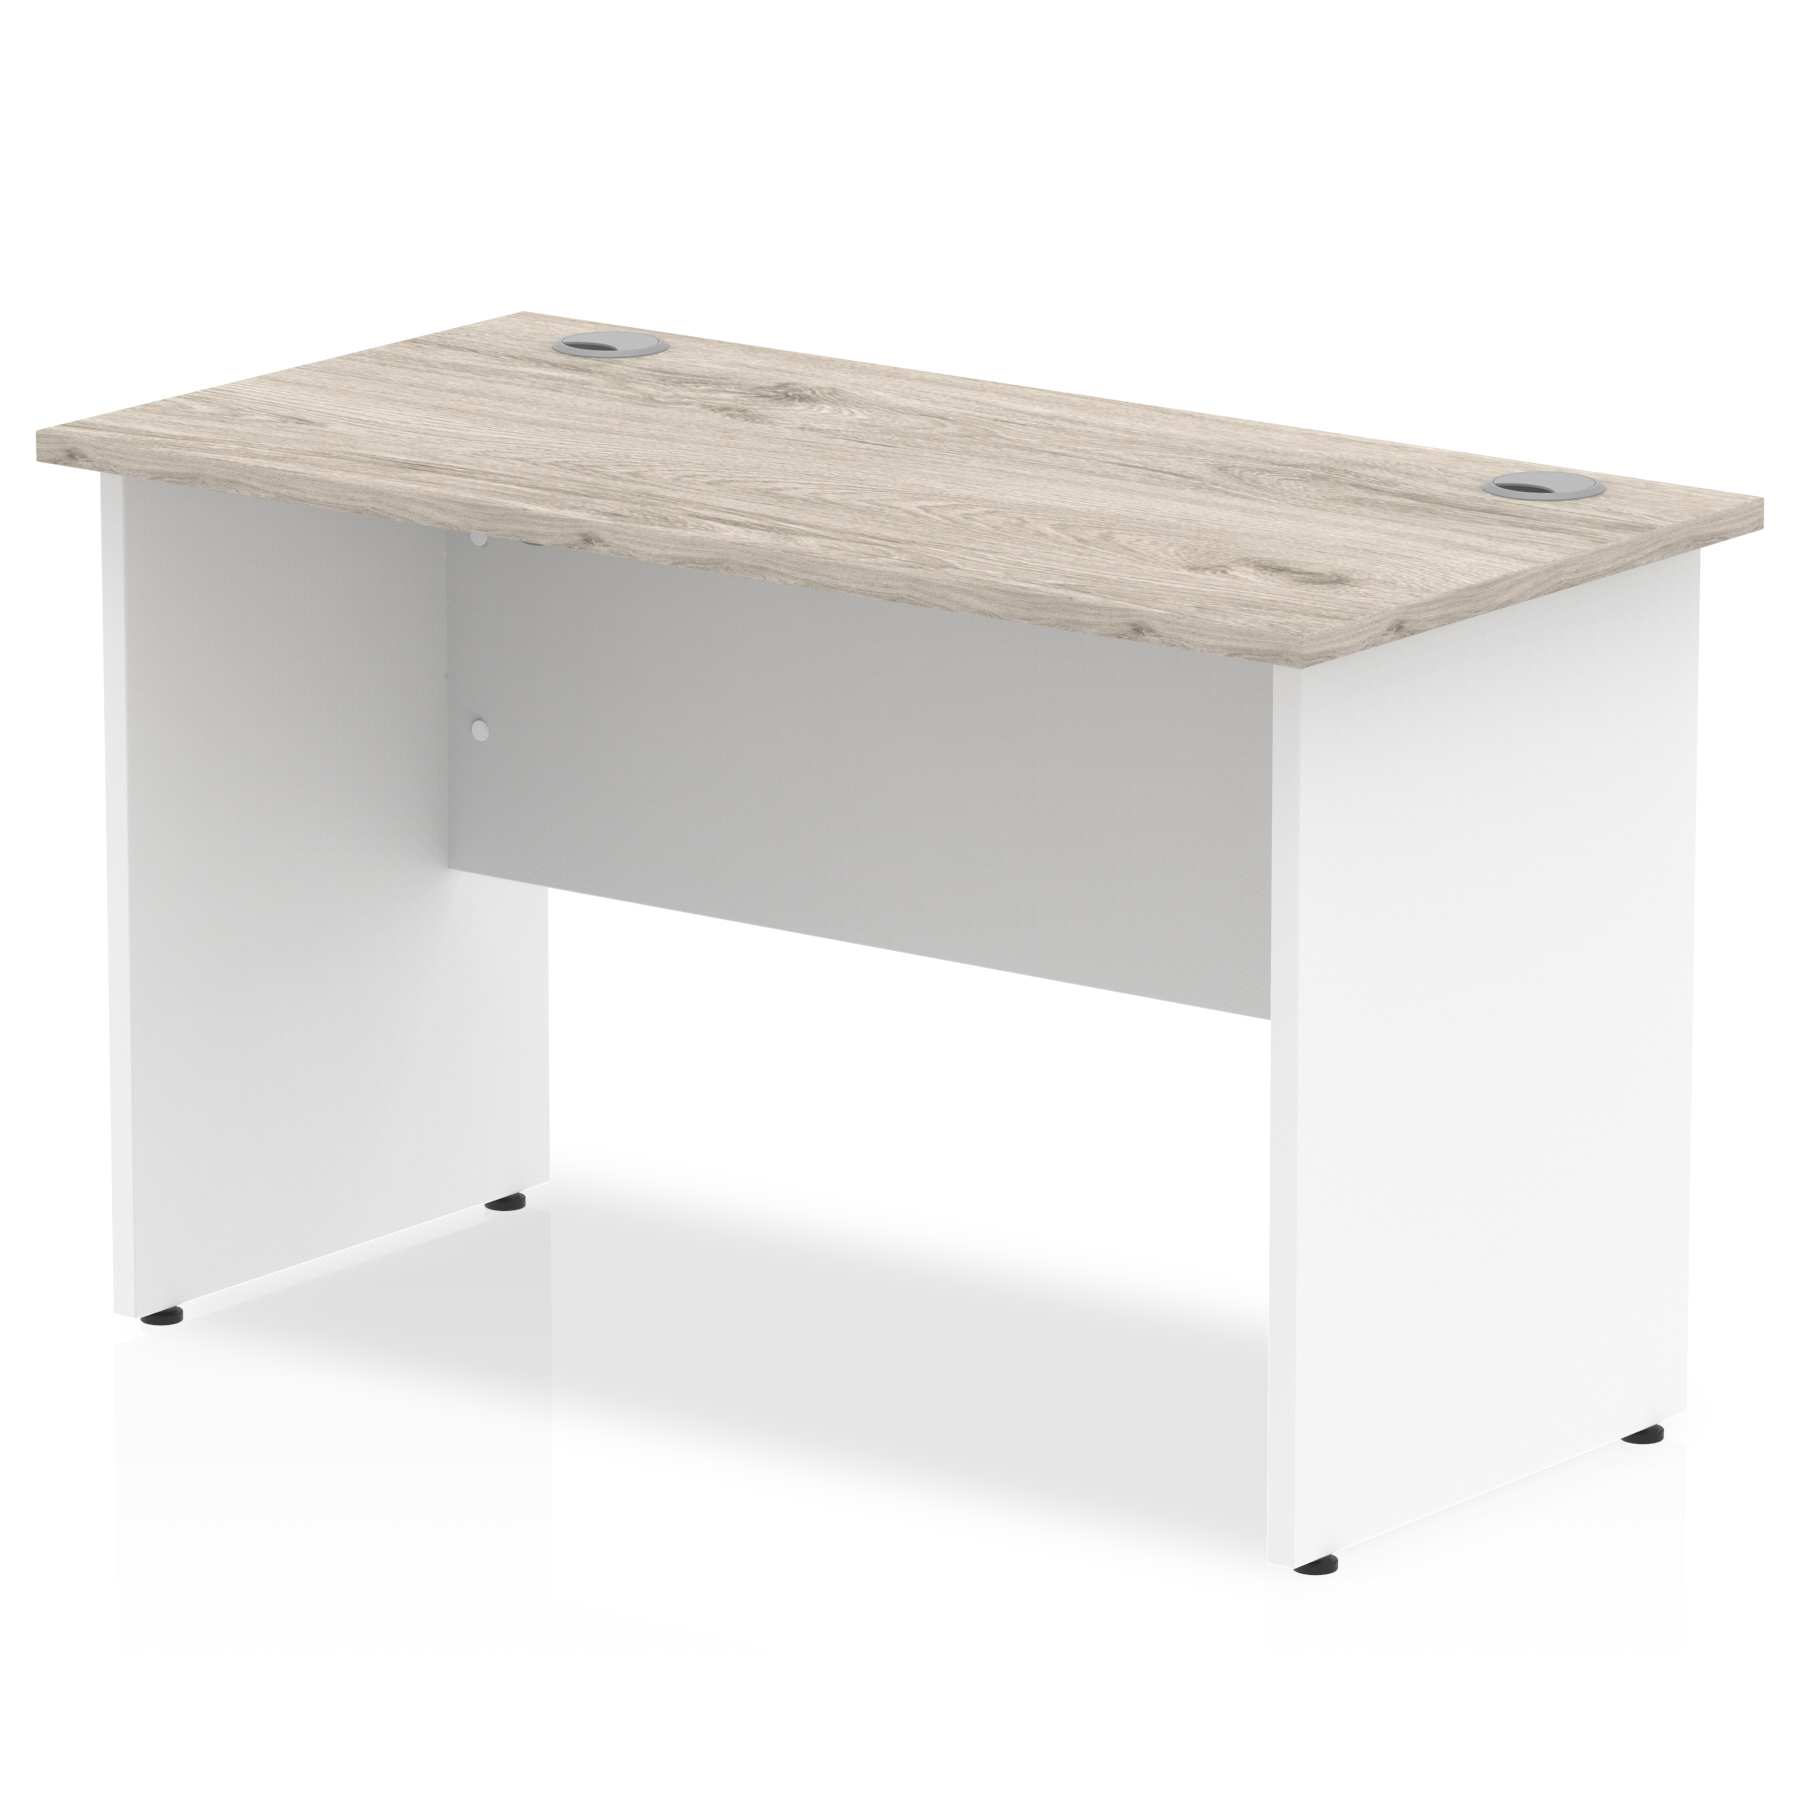 Trexus Slim Rectangular Desk Panel End Leg 1200x600mm Grey Oak/White Ref TT000149